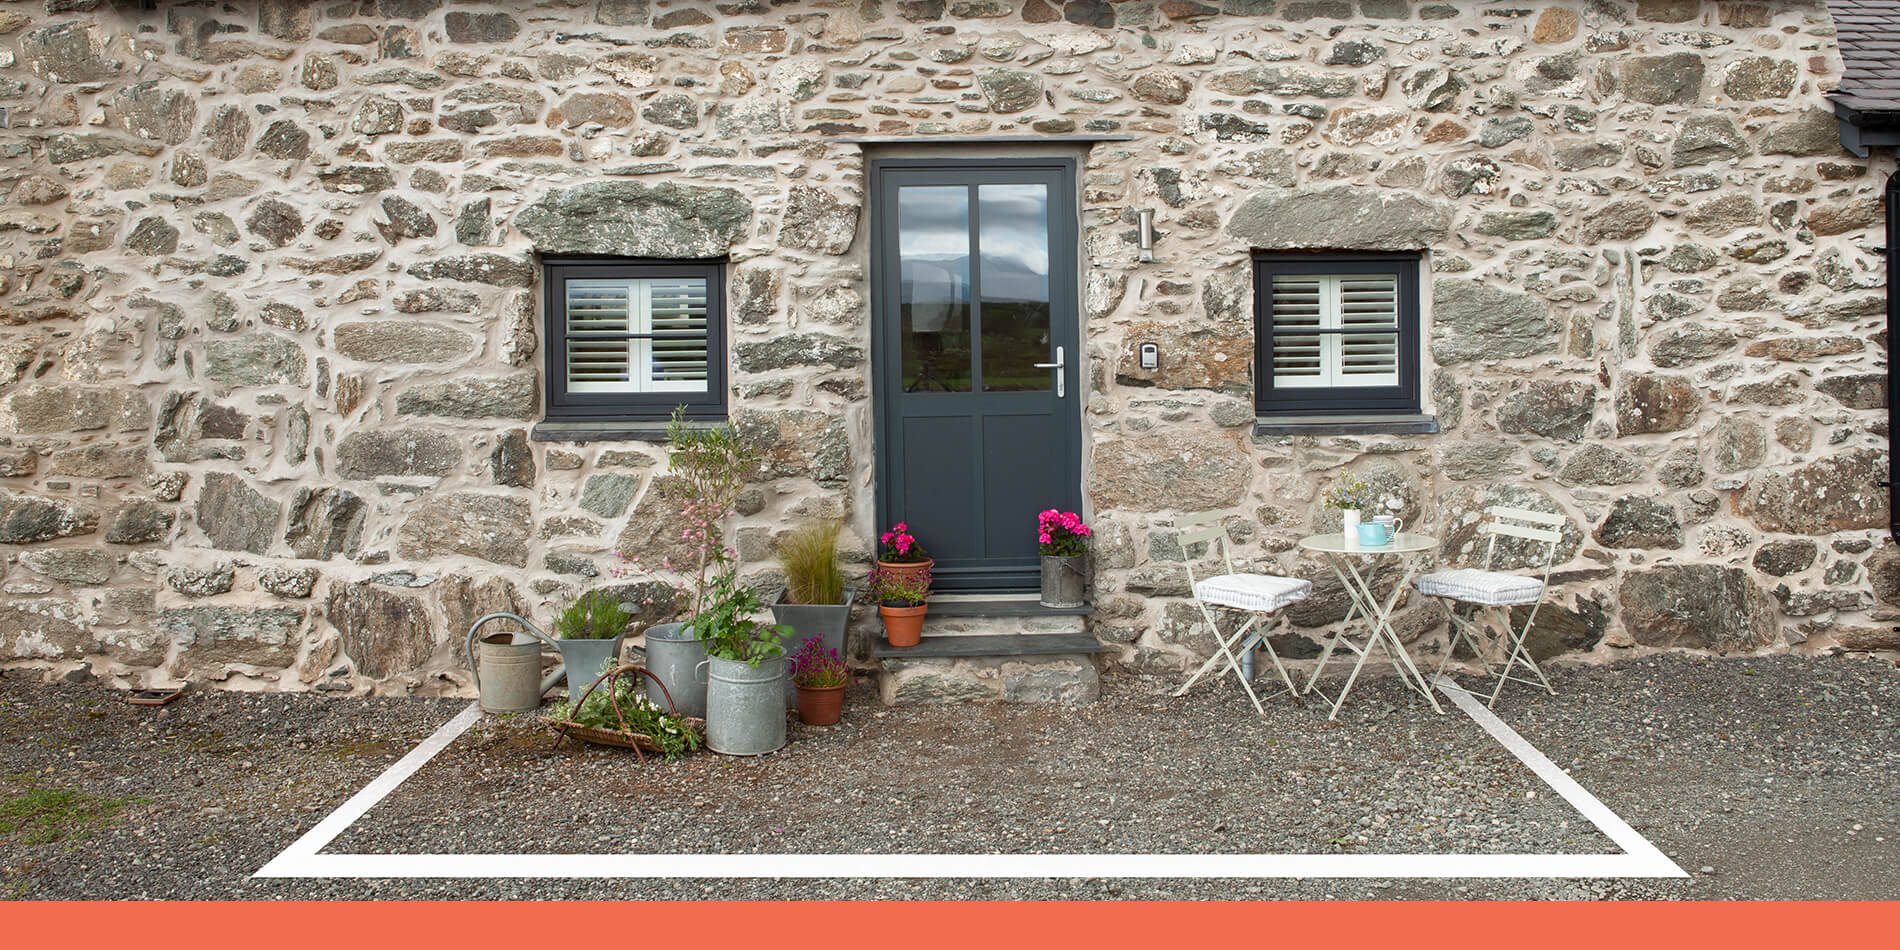 3 by 3 metre square outside holiday cottage